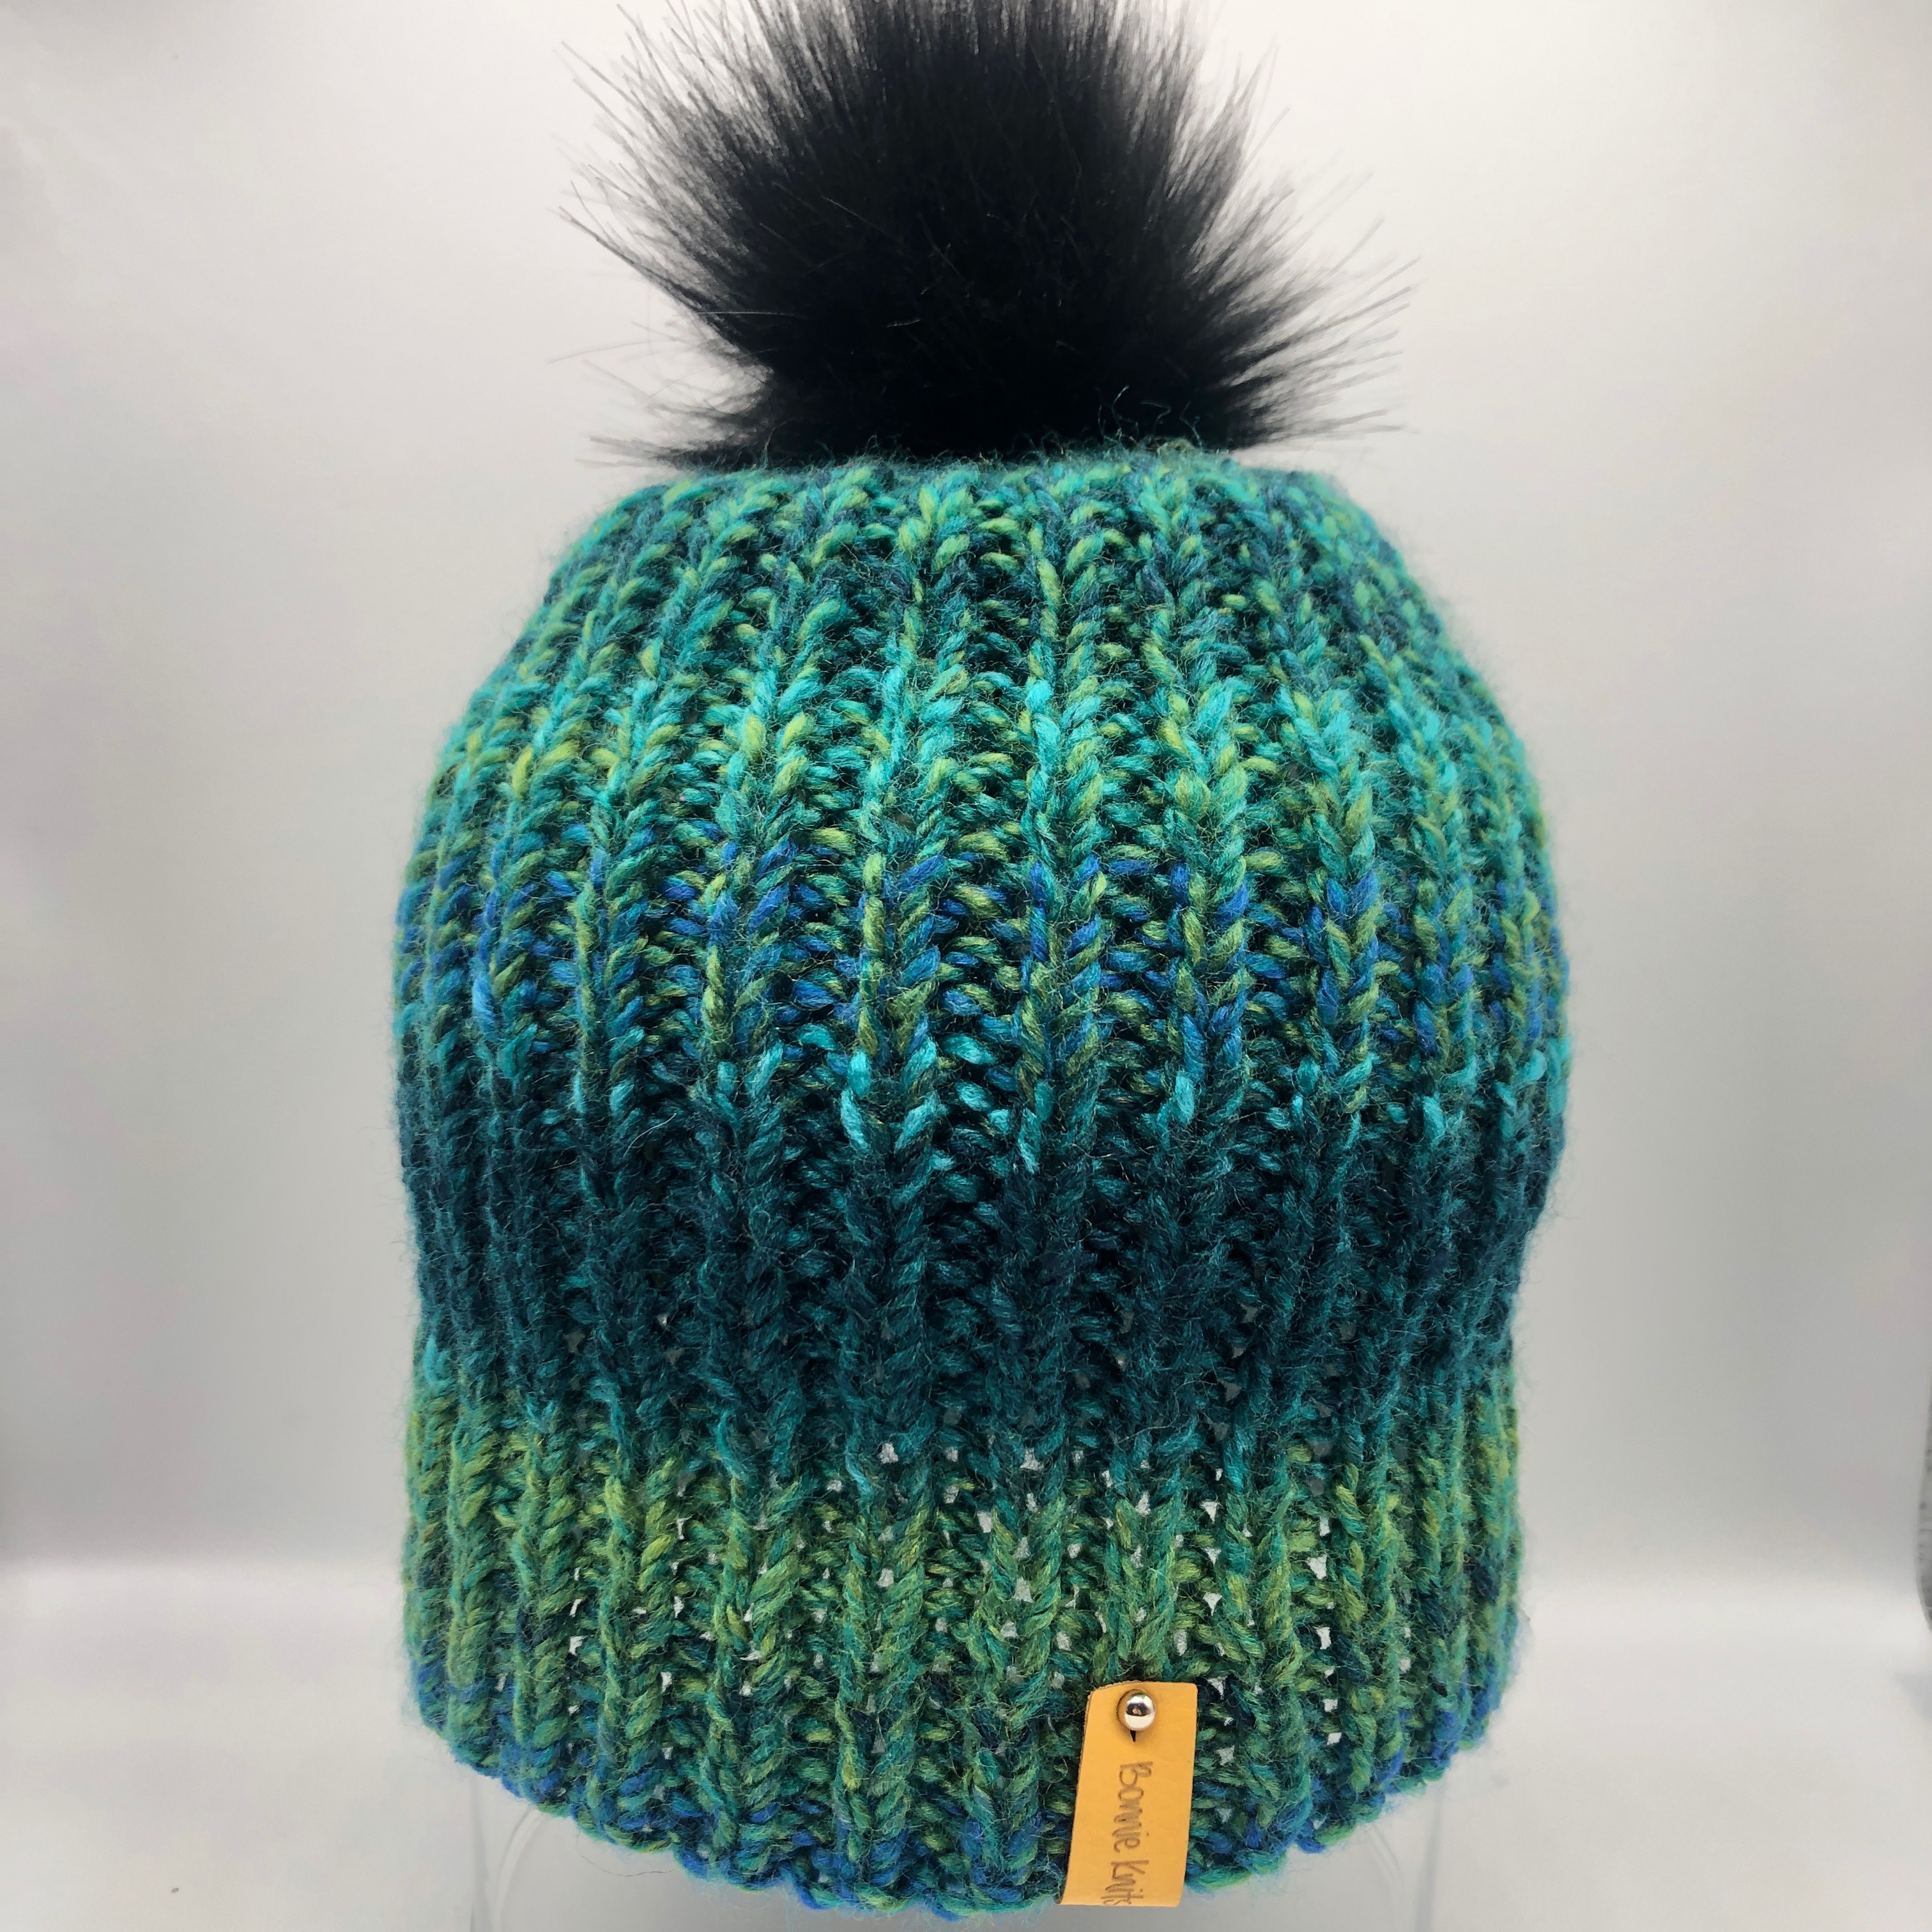 Knitted Hat with Detachable Pom Pom